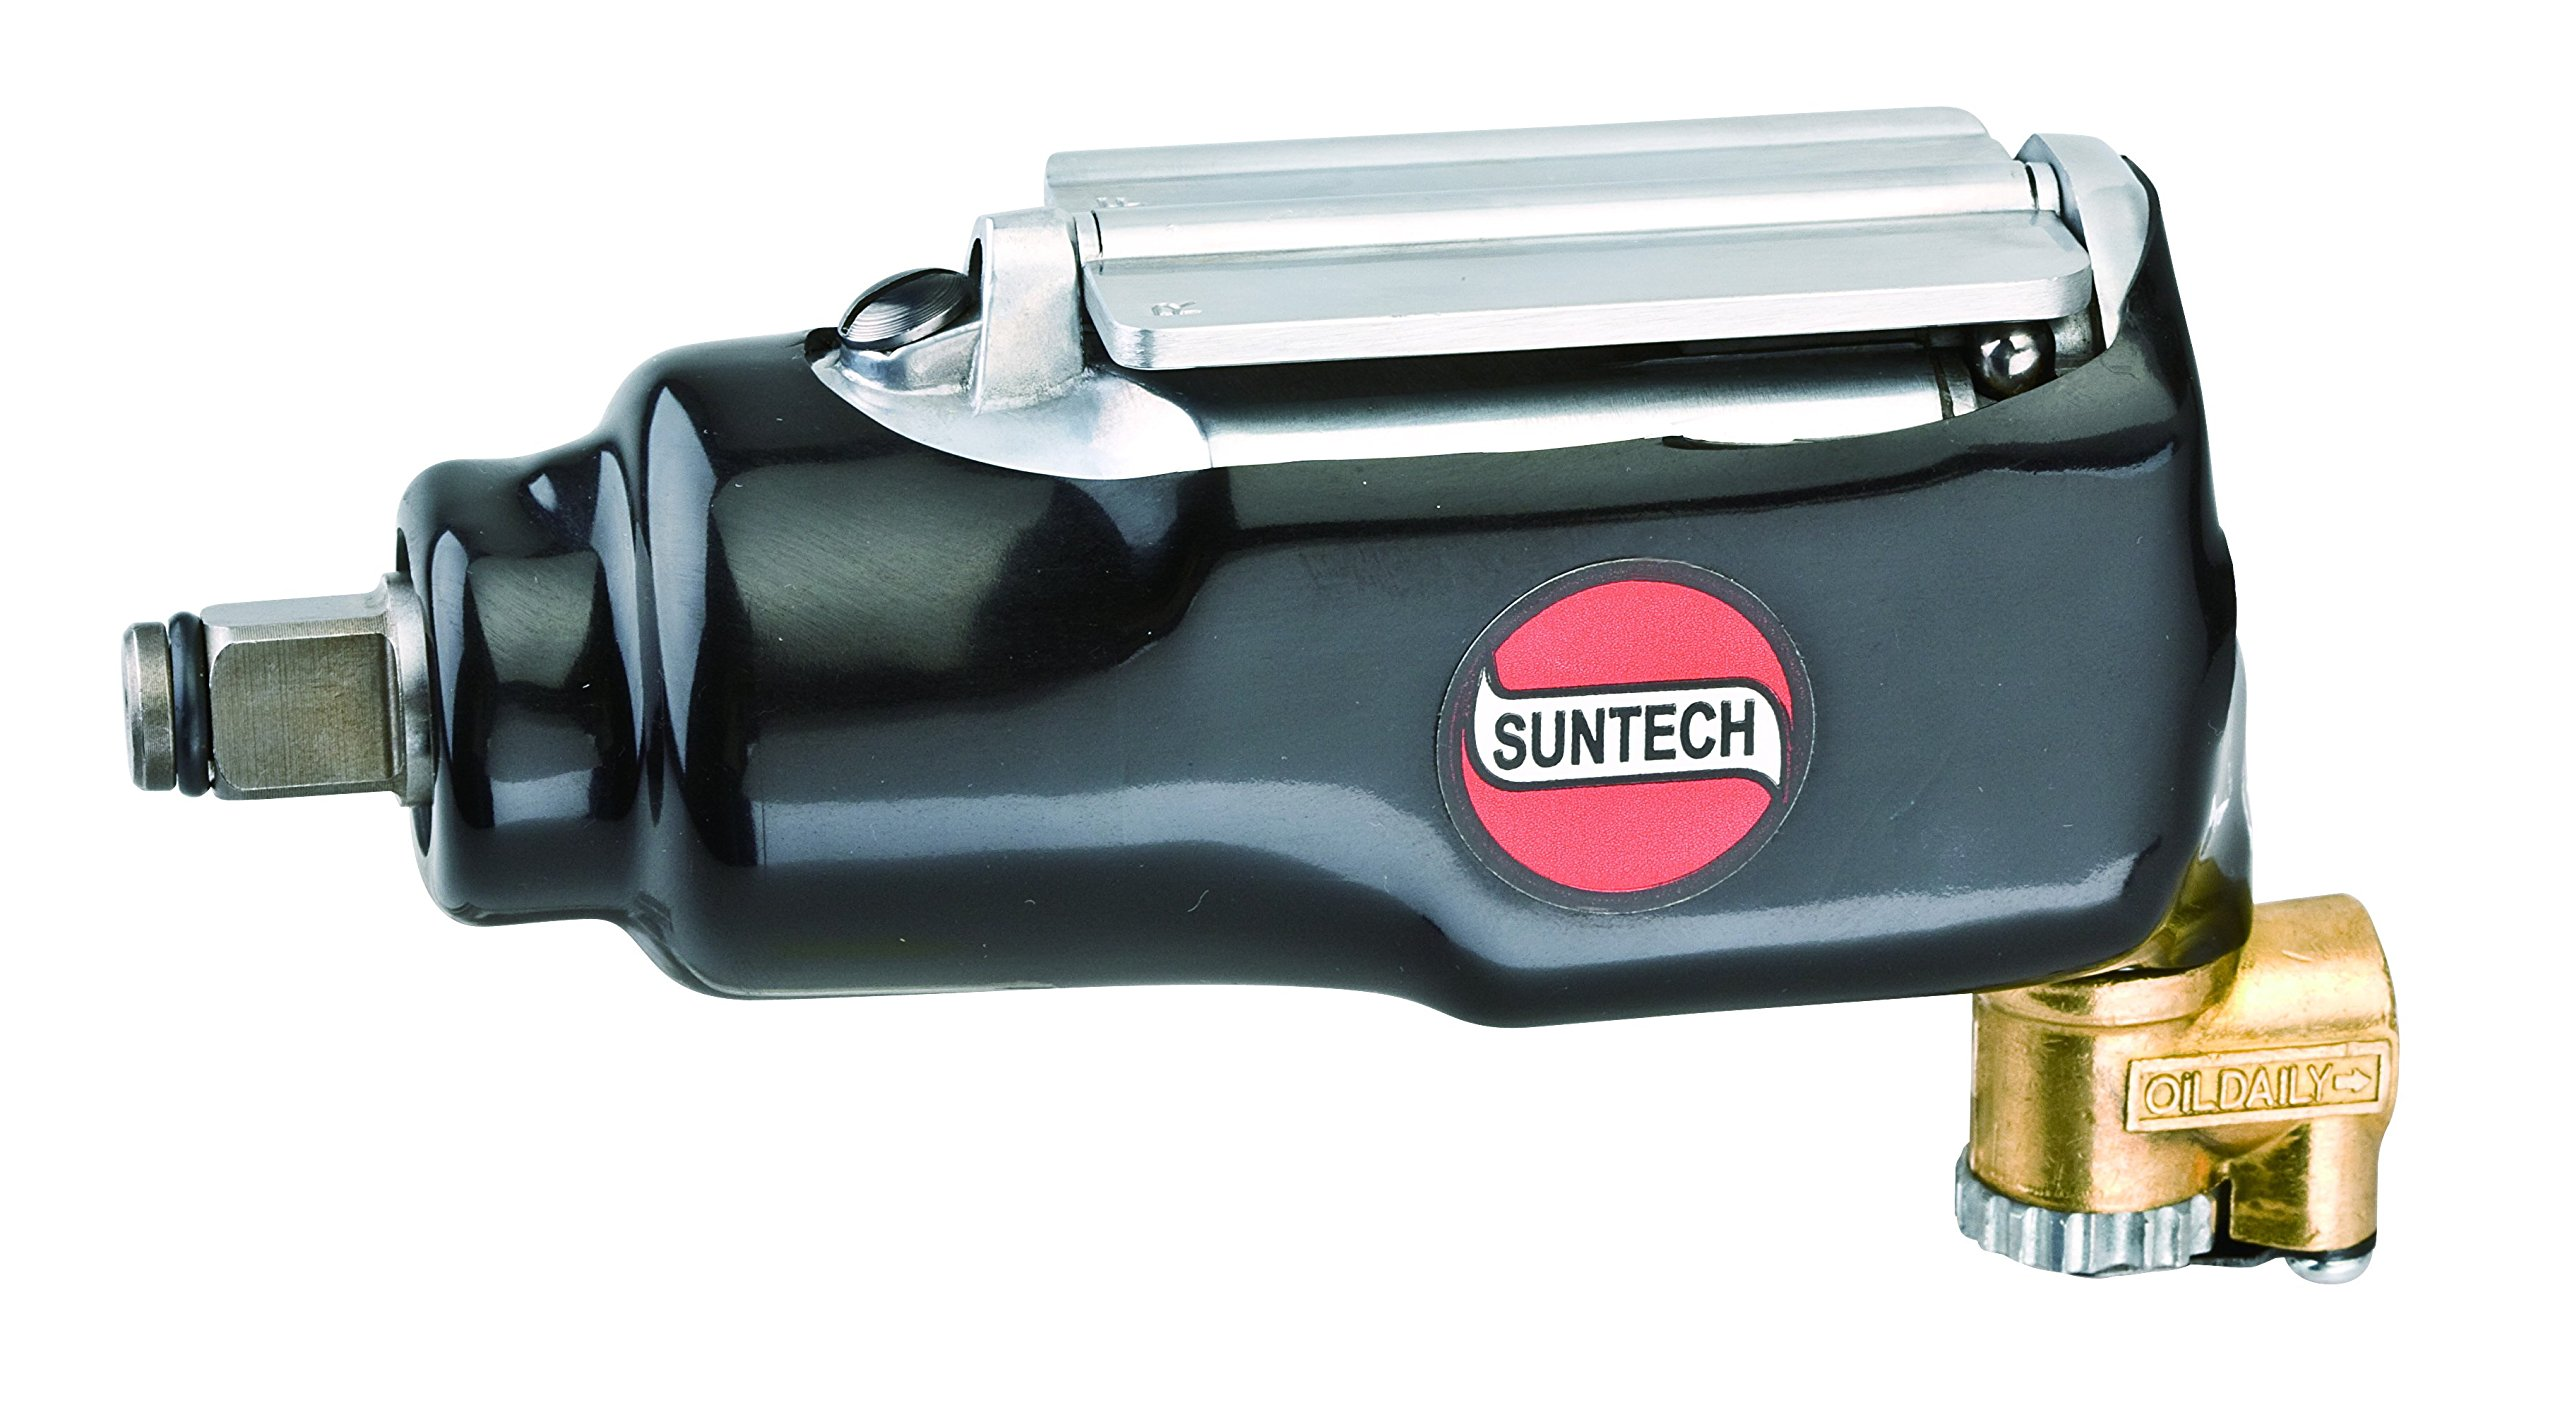 SUNTECH SM-4011A Air Butterfly Impact Wrench with Heavy Duty, Black, 1/2''